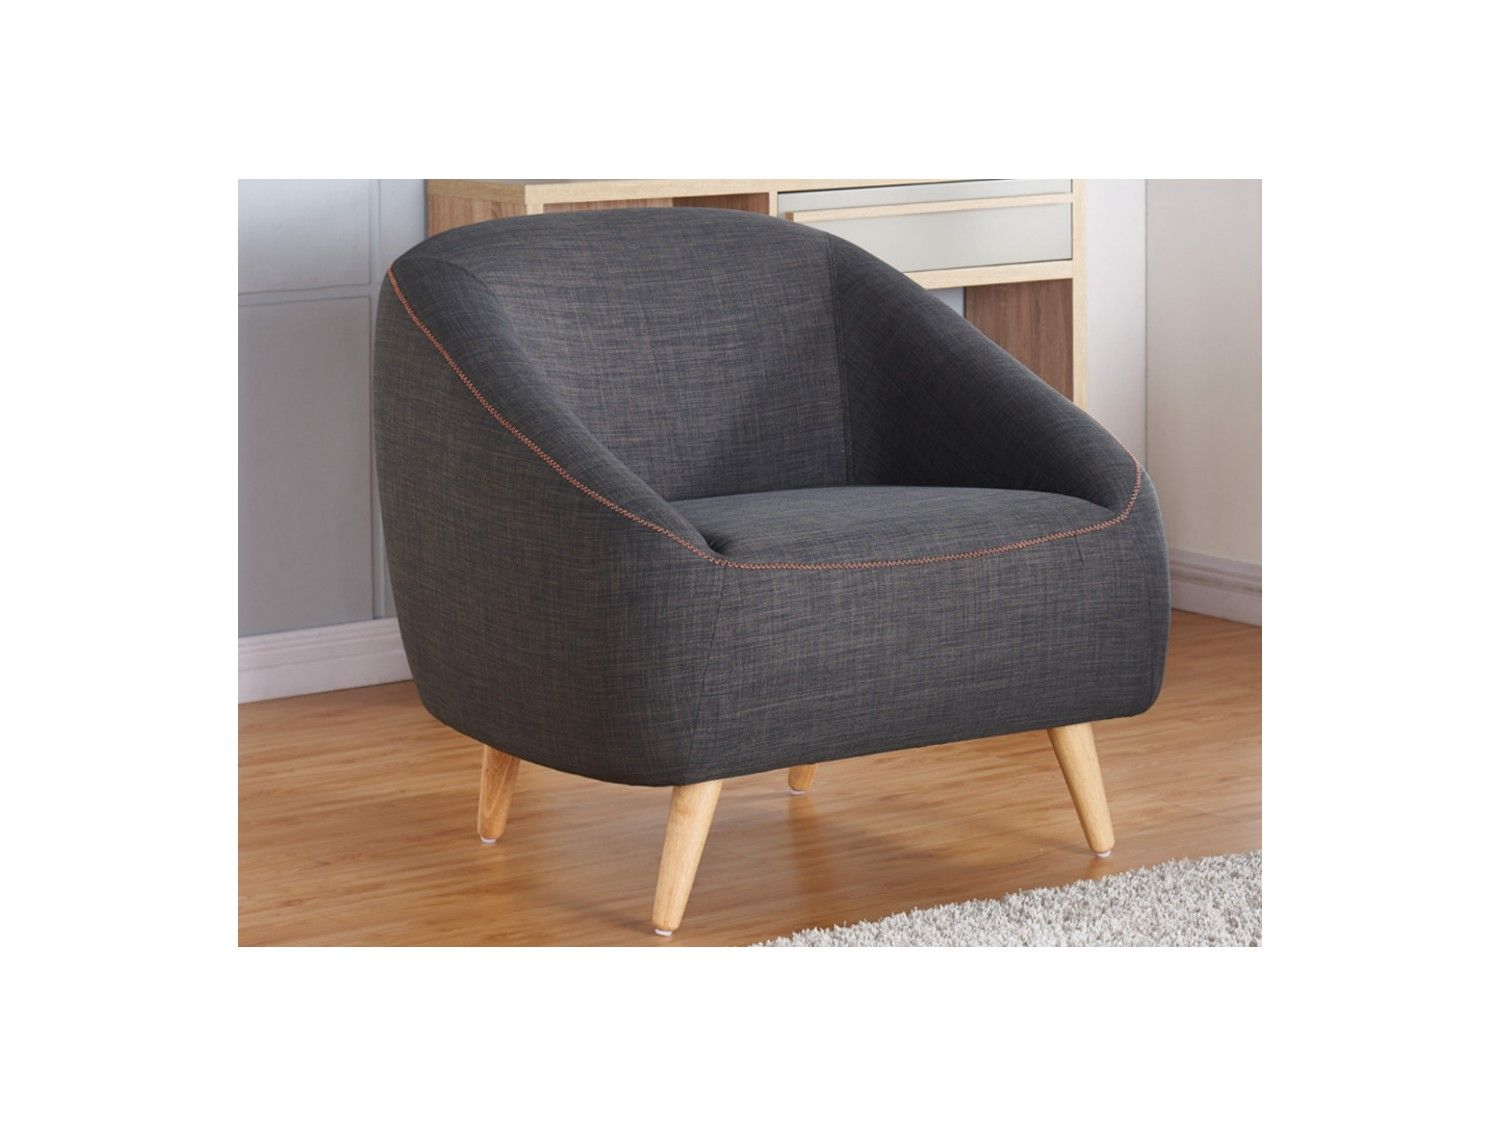 et coutures Anthracite Fauteuil en tissu TINKA oranges m8n0Nw